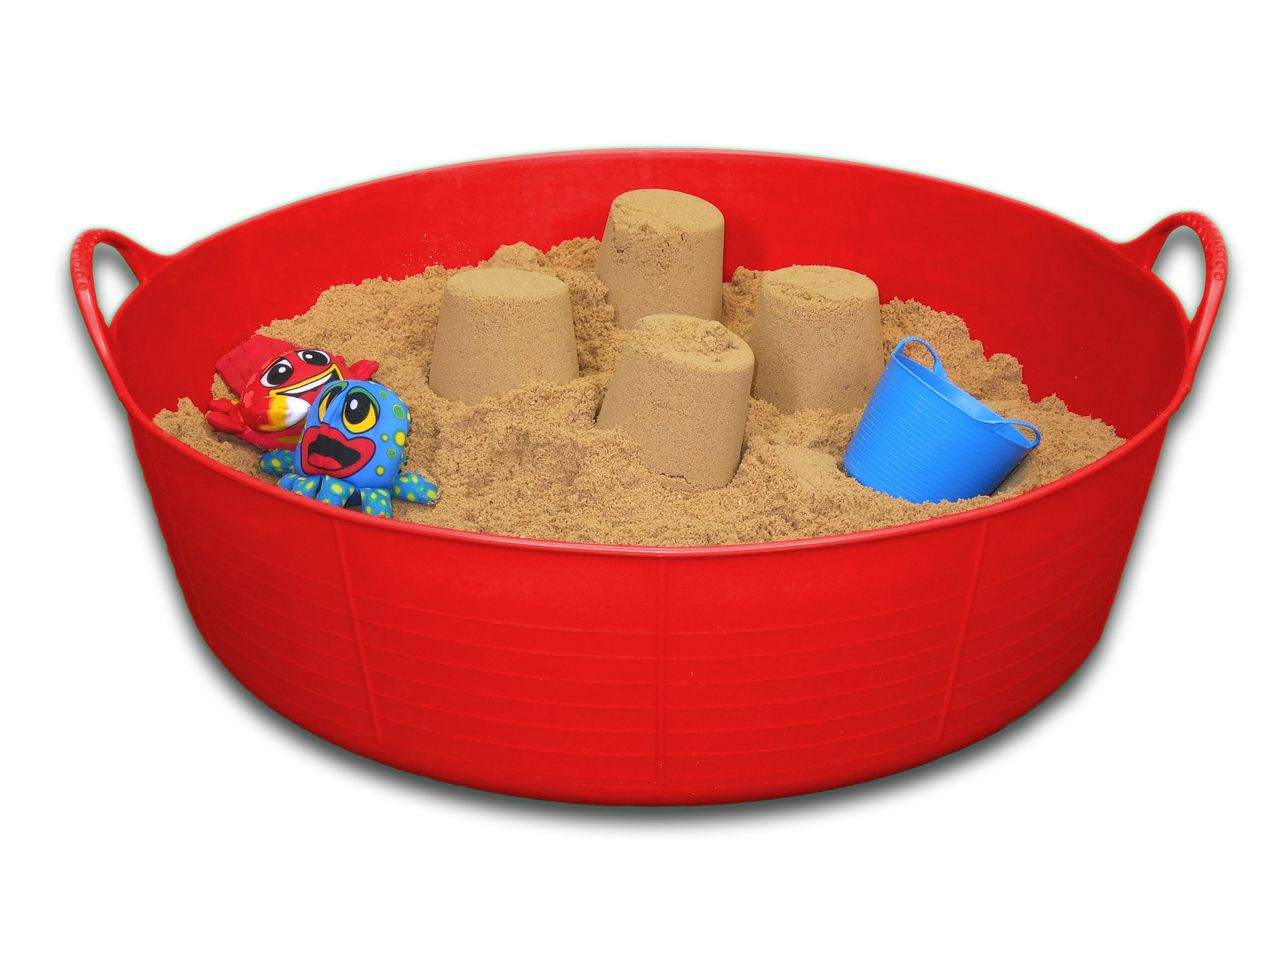 35L Tubtrugs (Large Shallow) | Pinterest | Shallow, Tubs and Toy storage